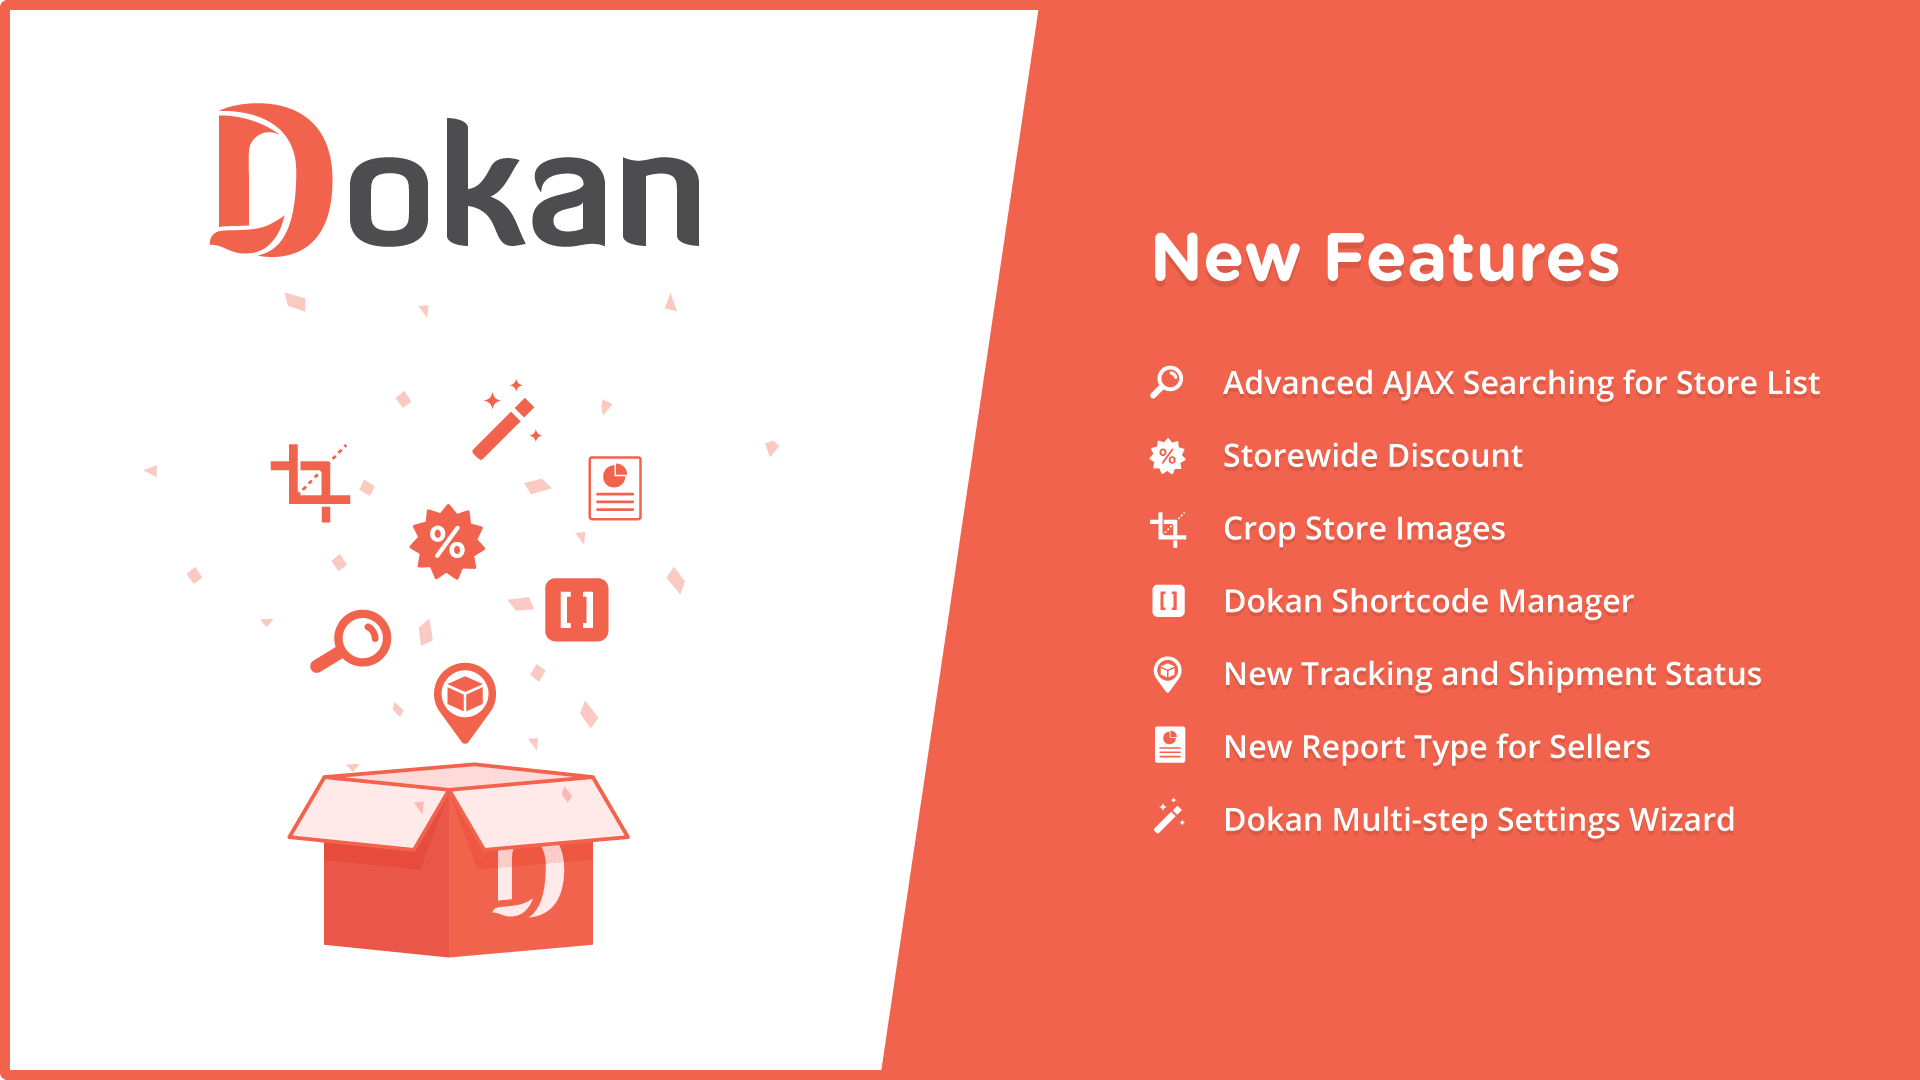 Dokan Update- Upcoming New Features